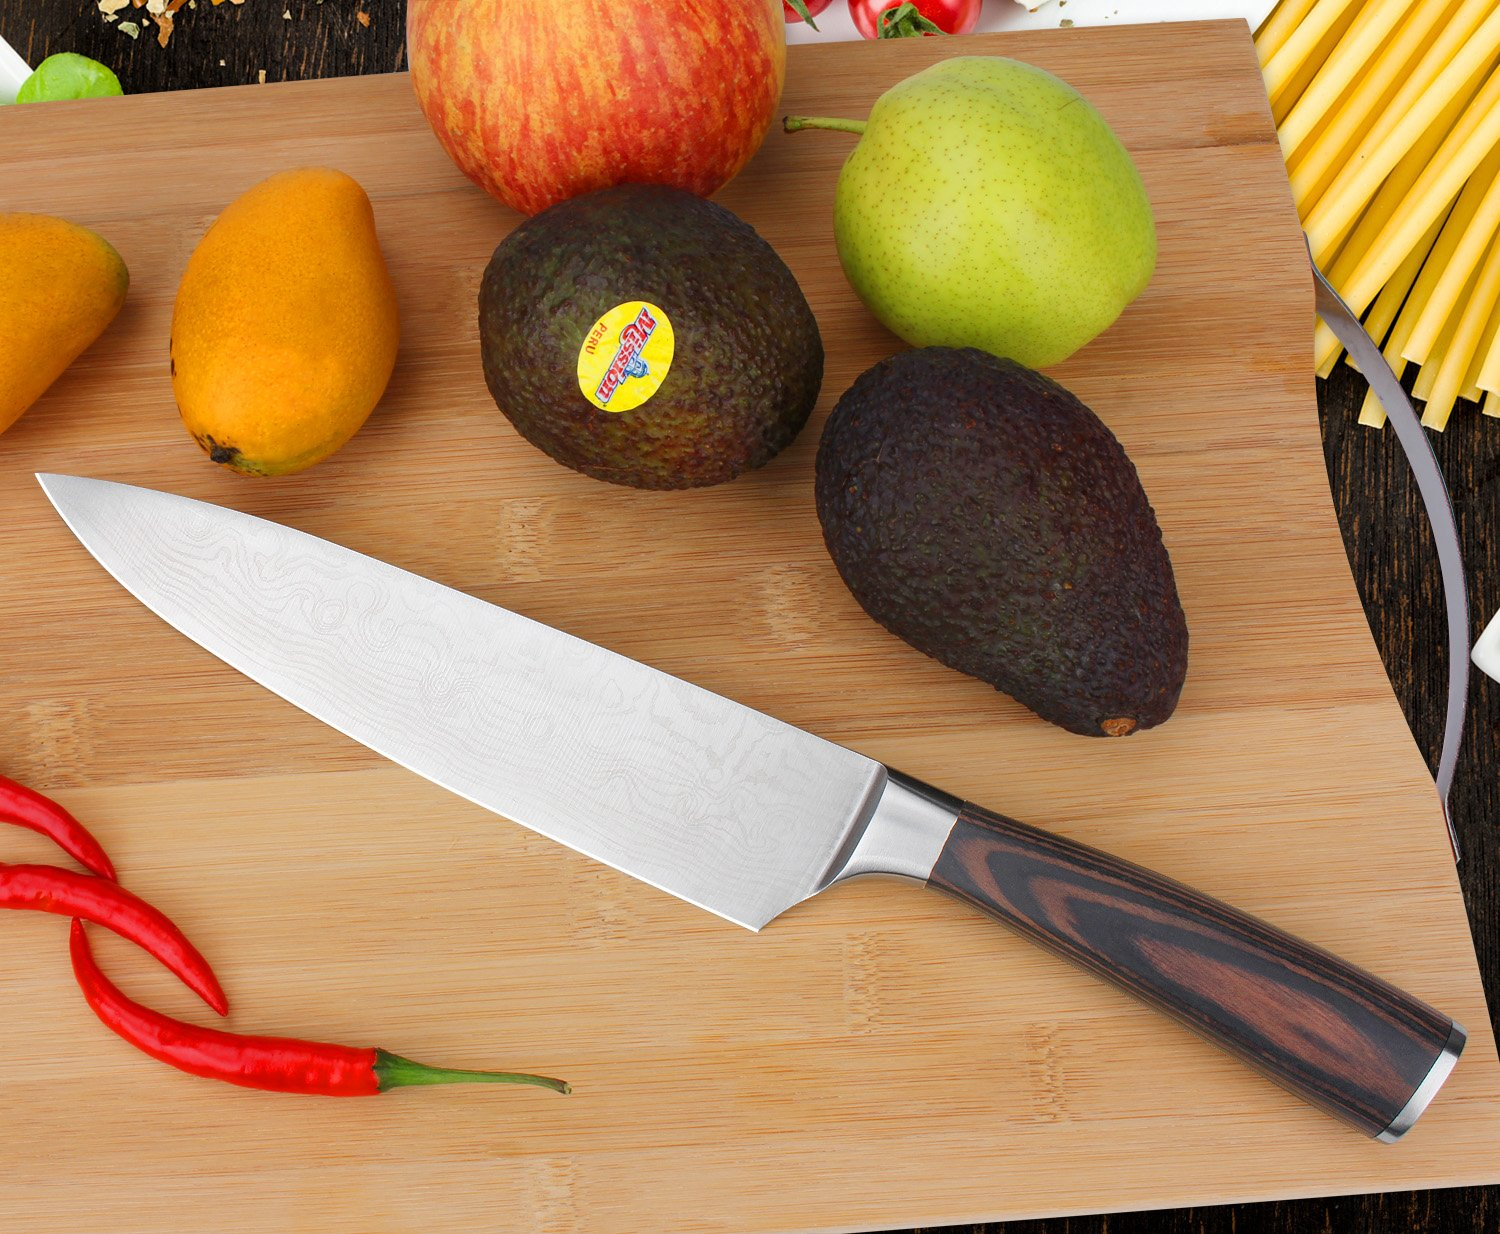 amazon com augymer chef knife 8